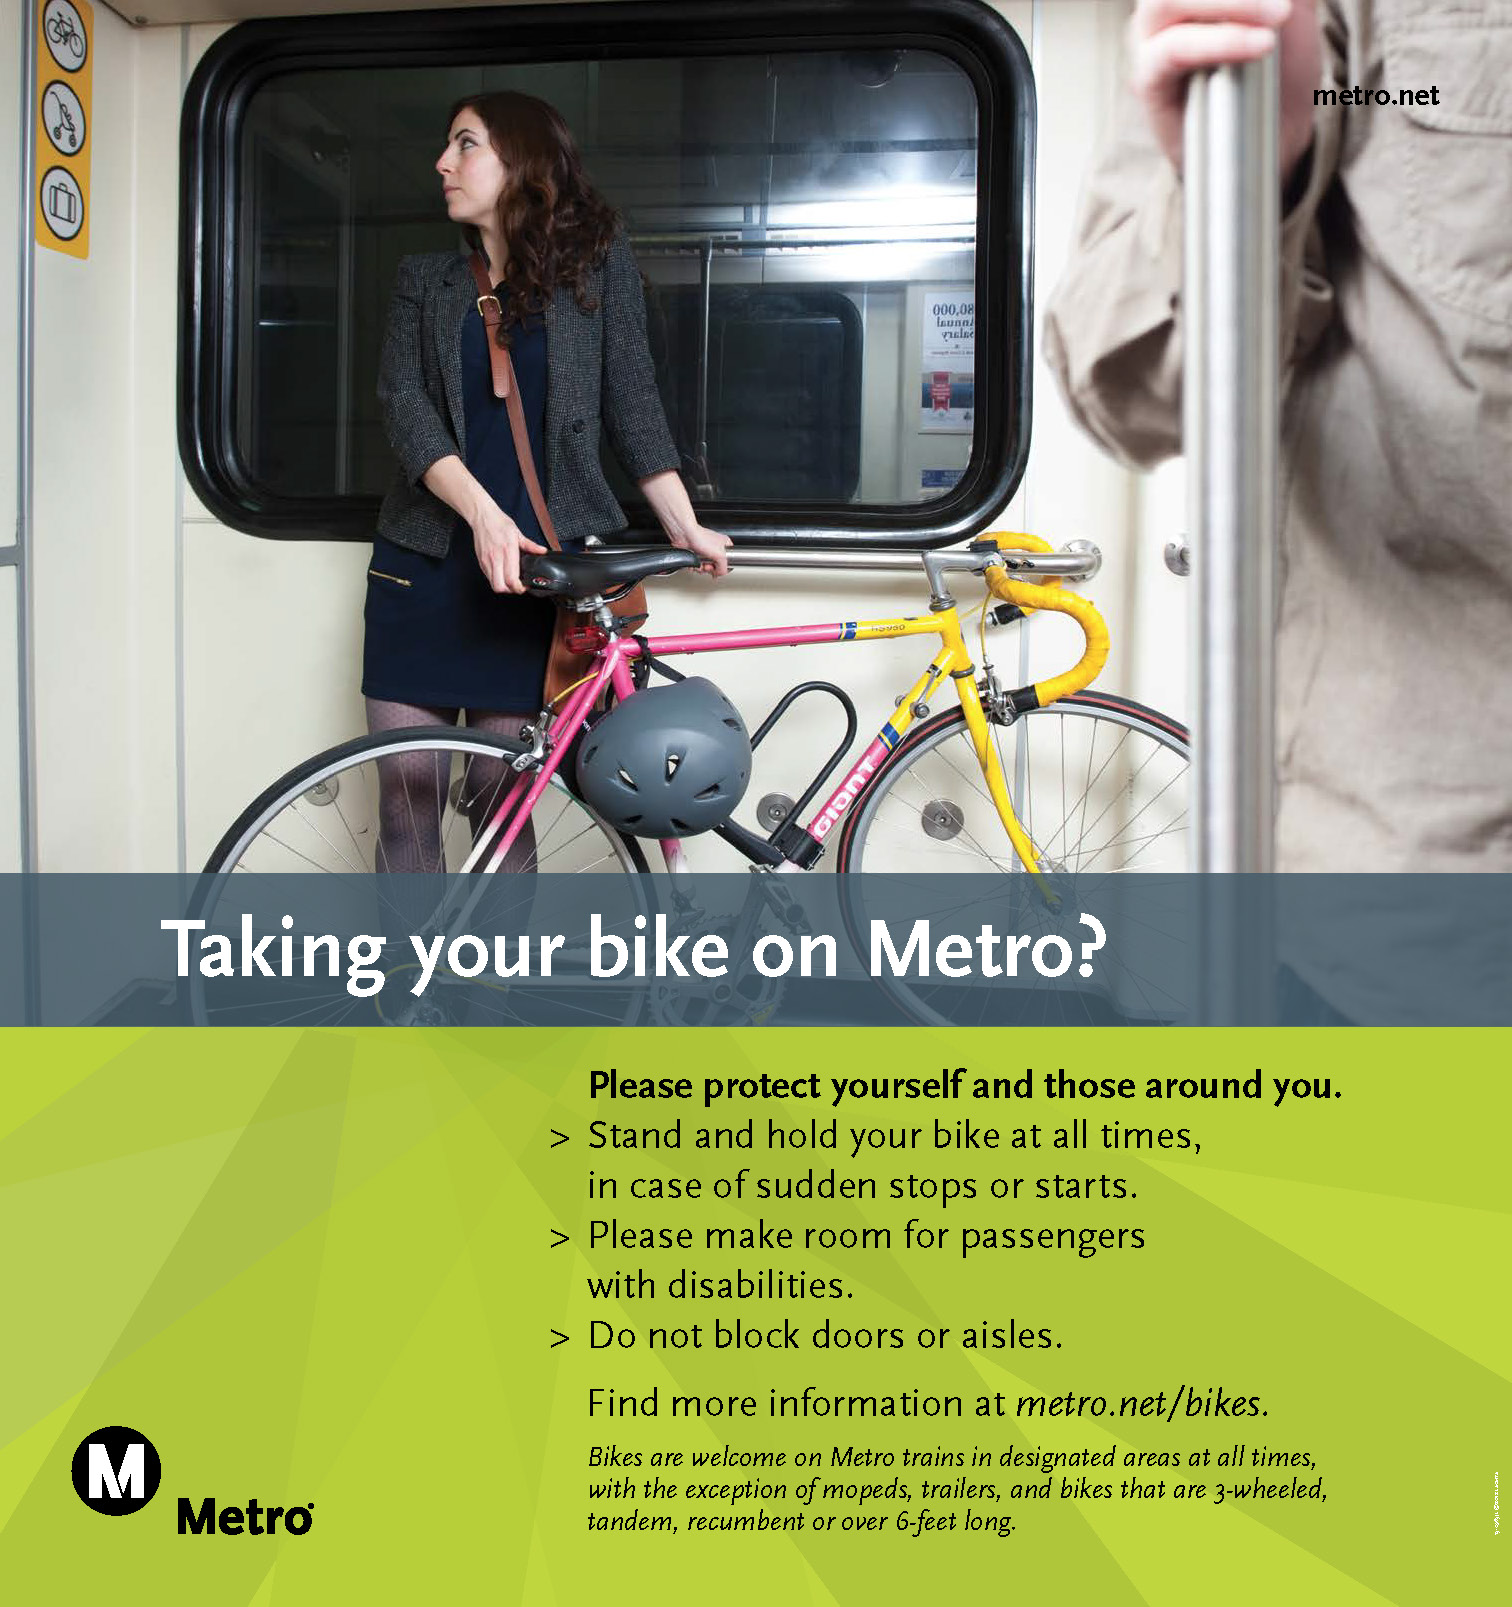 New Metro posters urge cyclists to stay with their bikes in the designated area and do not block train doors or aisles.